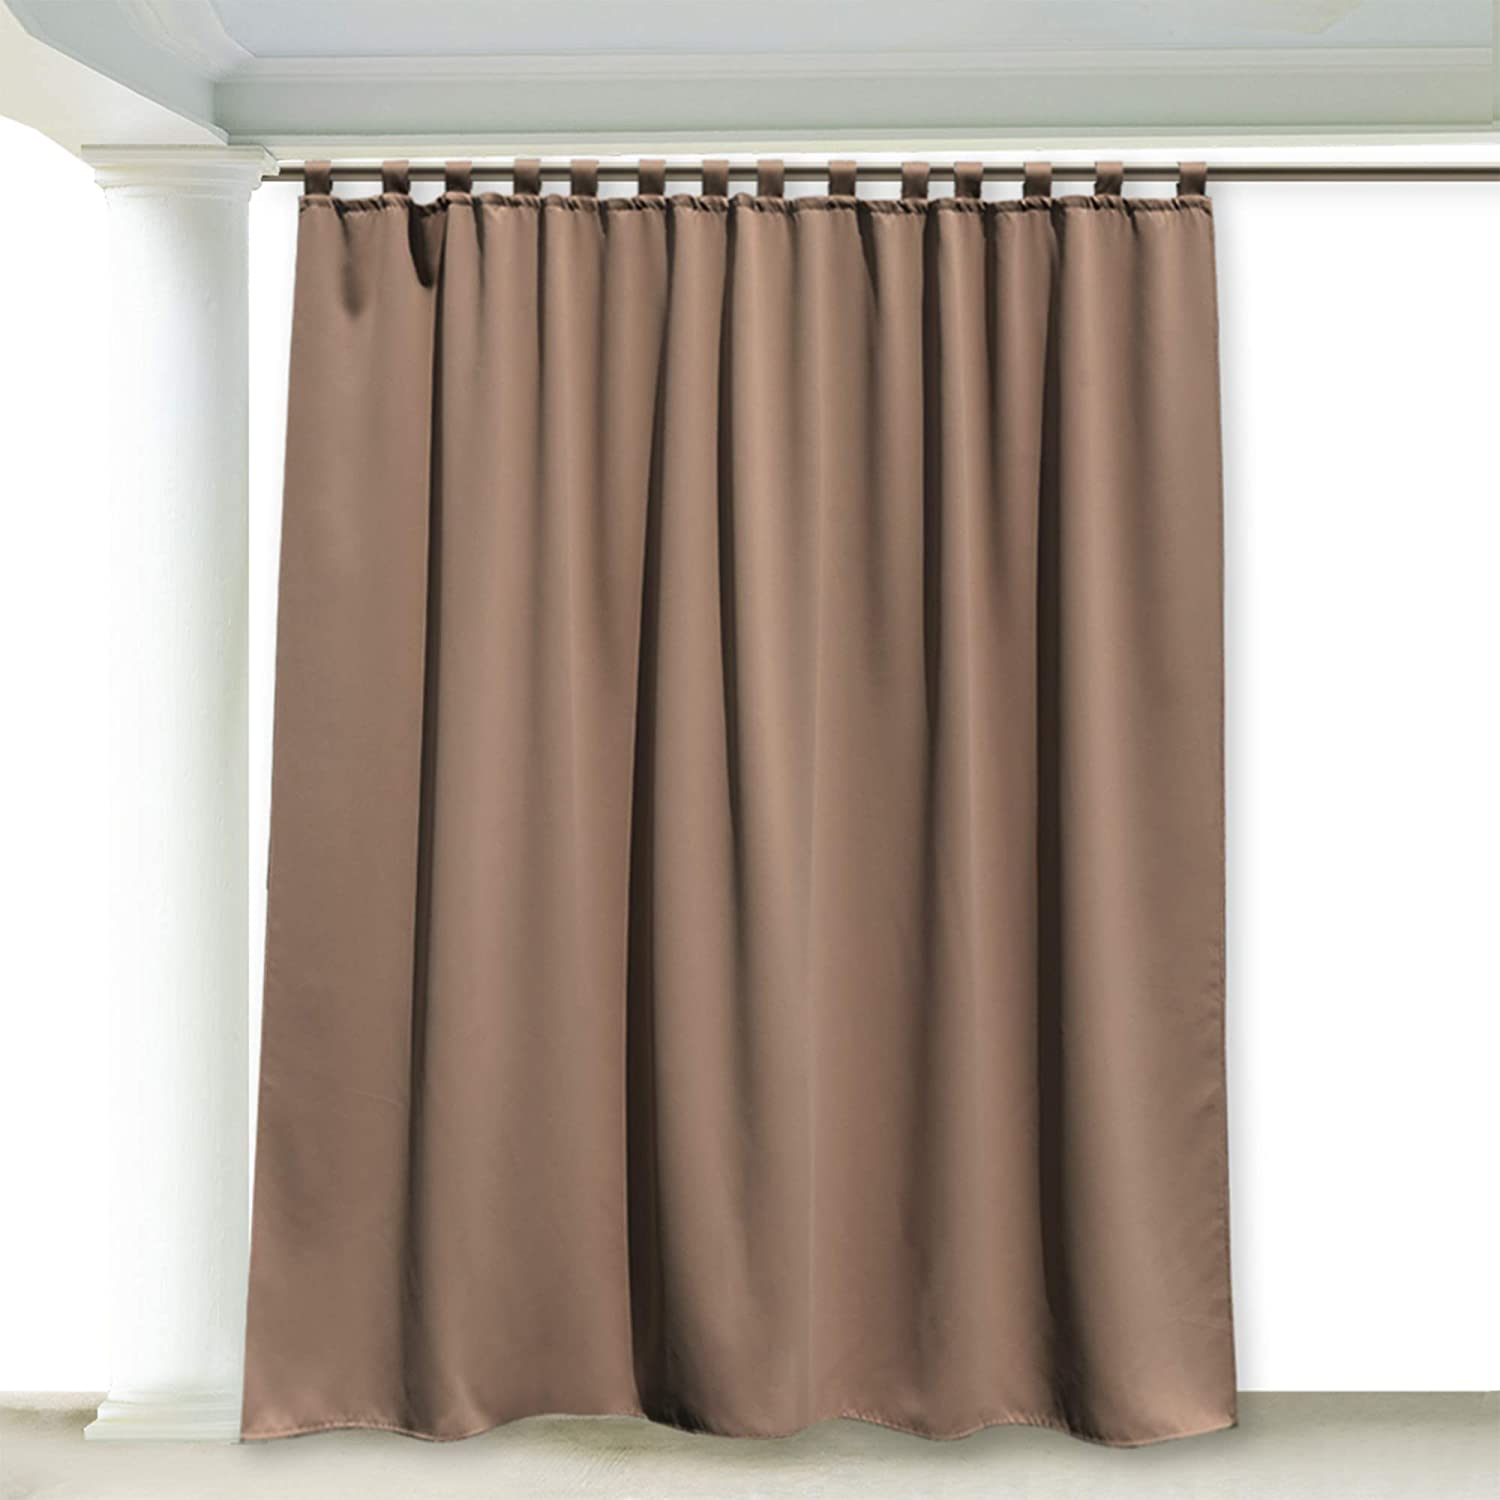 RYB HOME 100 inch Wide Patio Outdoor Curtain, Stain Repellent Privacy for Lawn & Garden, Inside Outside Thermal Insulated UV Ray Block Drape for Cabin / Cabana, Width 100 by Length 108, Mocha